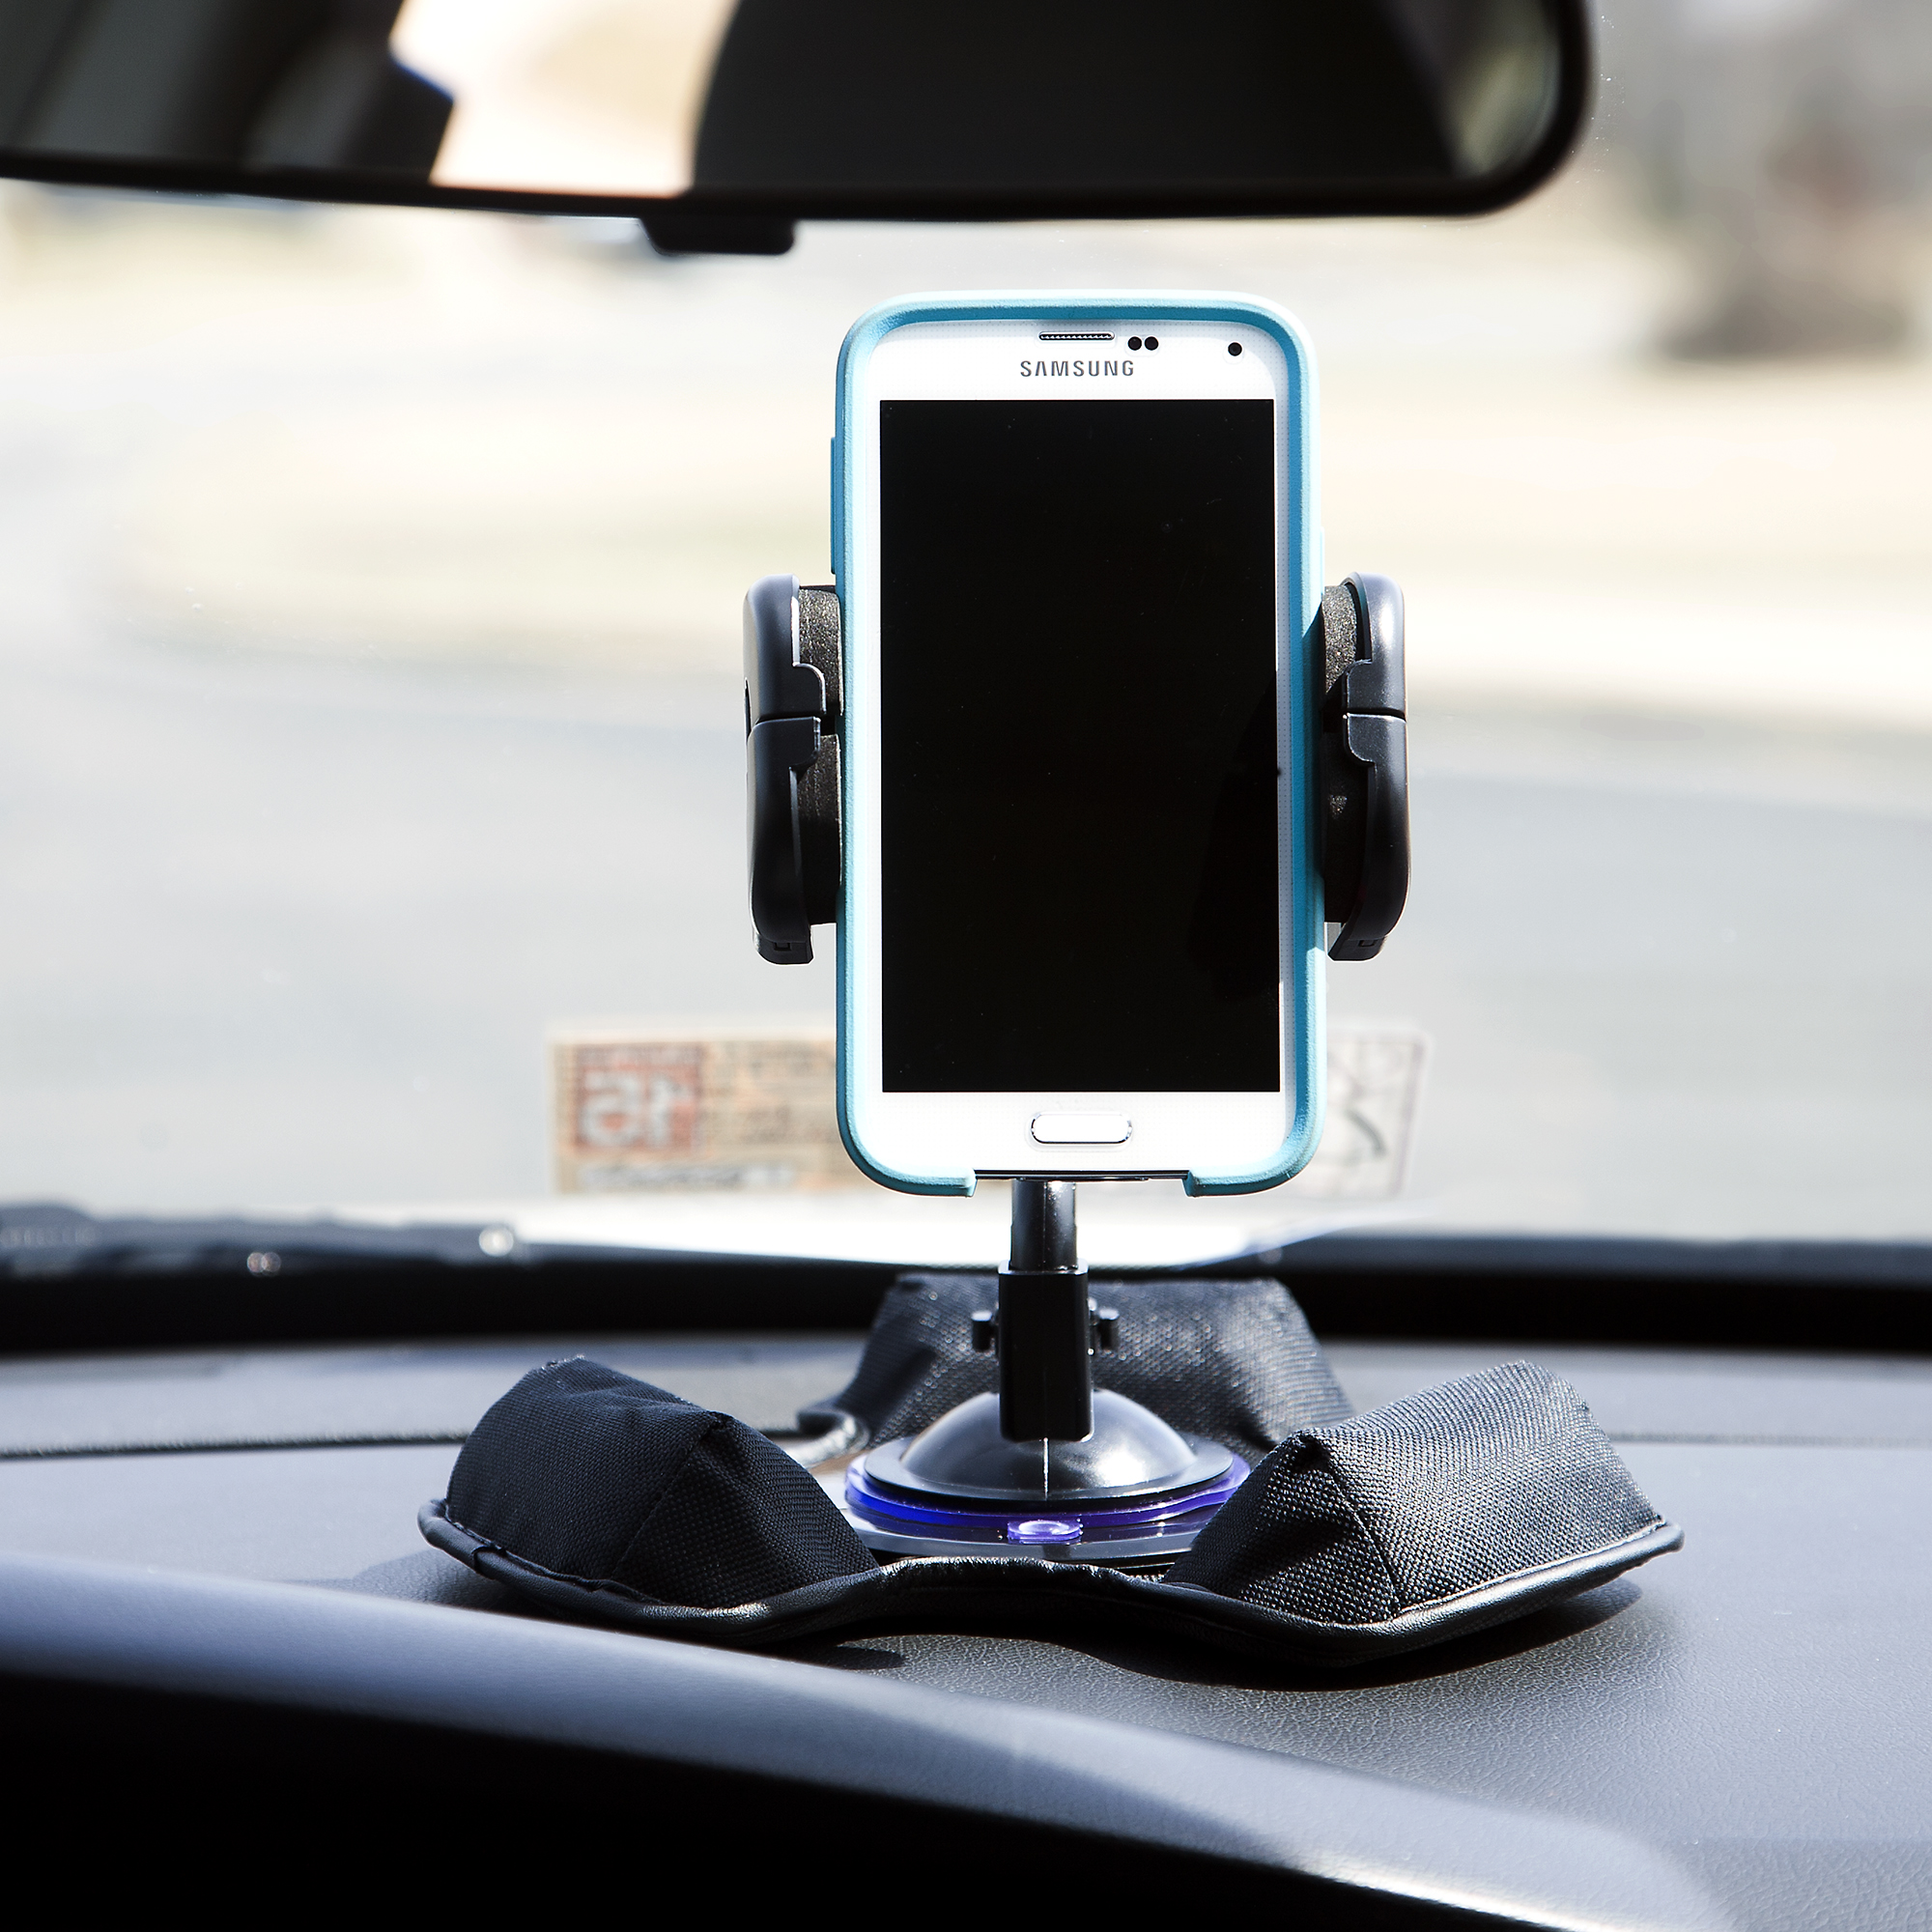 Car / Truck Vehicle Holder Mounting System for Sandisk Sansa c100 Includes Unique Flexible Windshield Suction and Universal Dashboard Mount Options